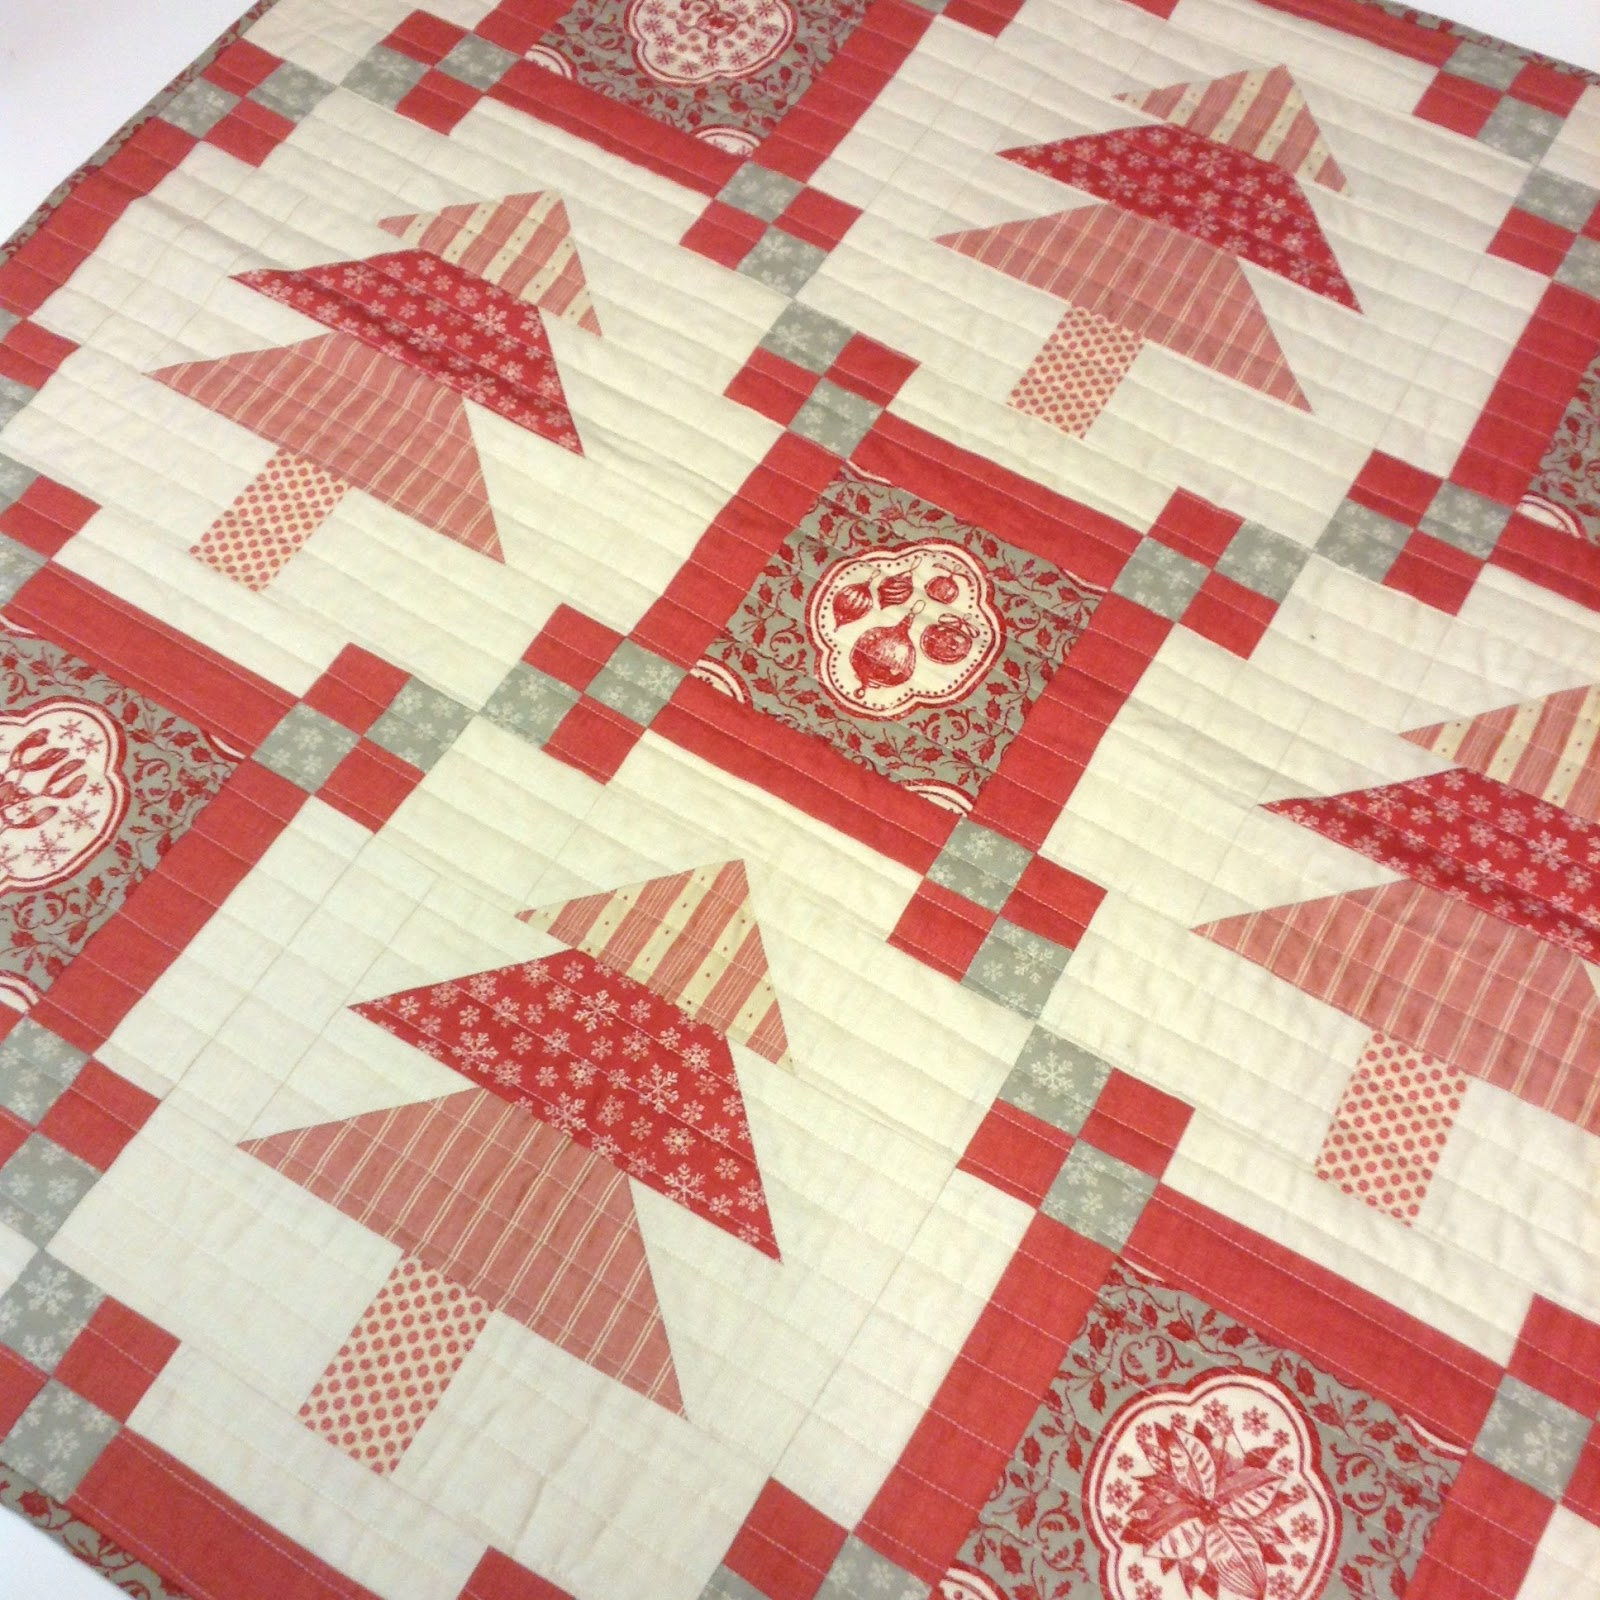 Quilting Patterns For Christmas : A Little Happy Place: Christmas Quilts and A Little Happy Simple Squares Quilt Pattern